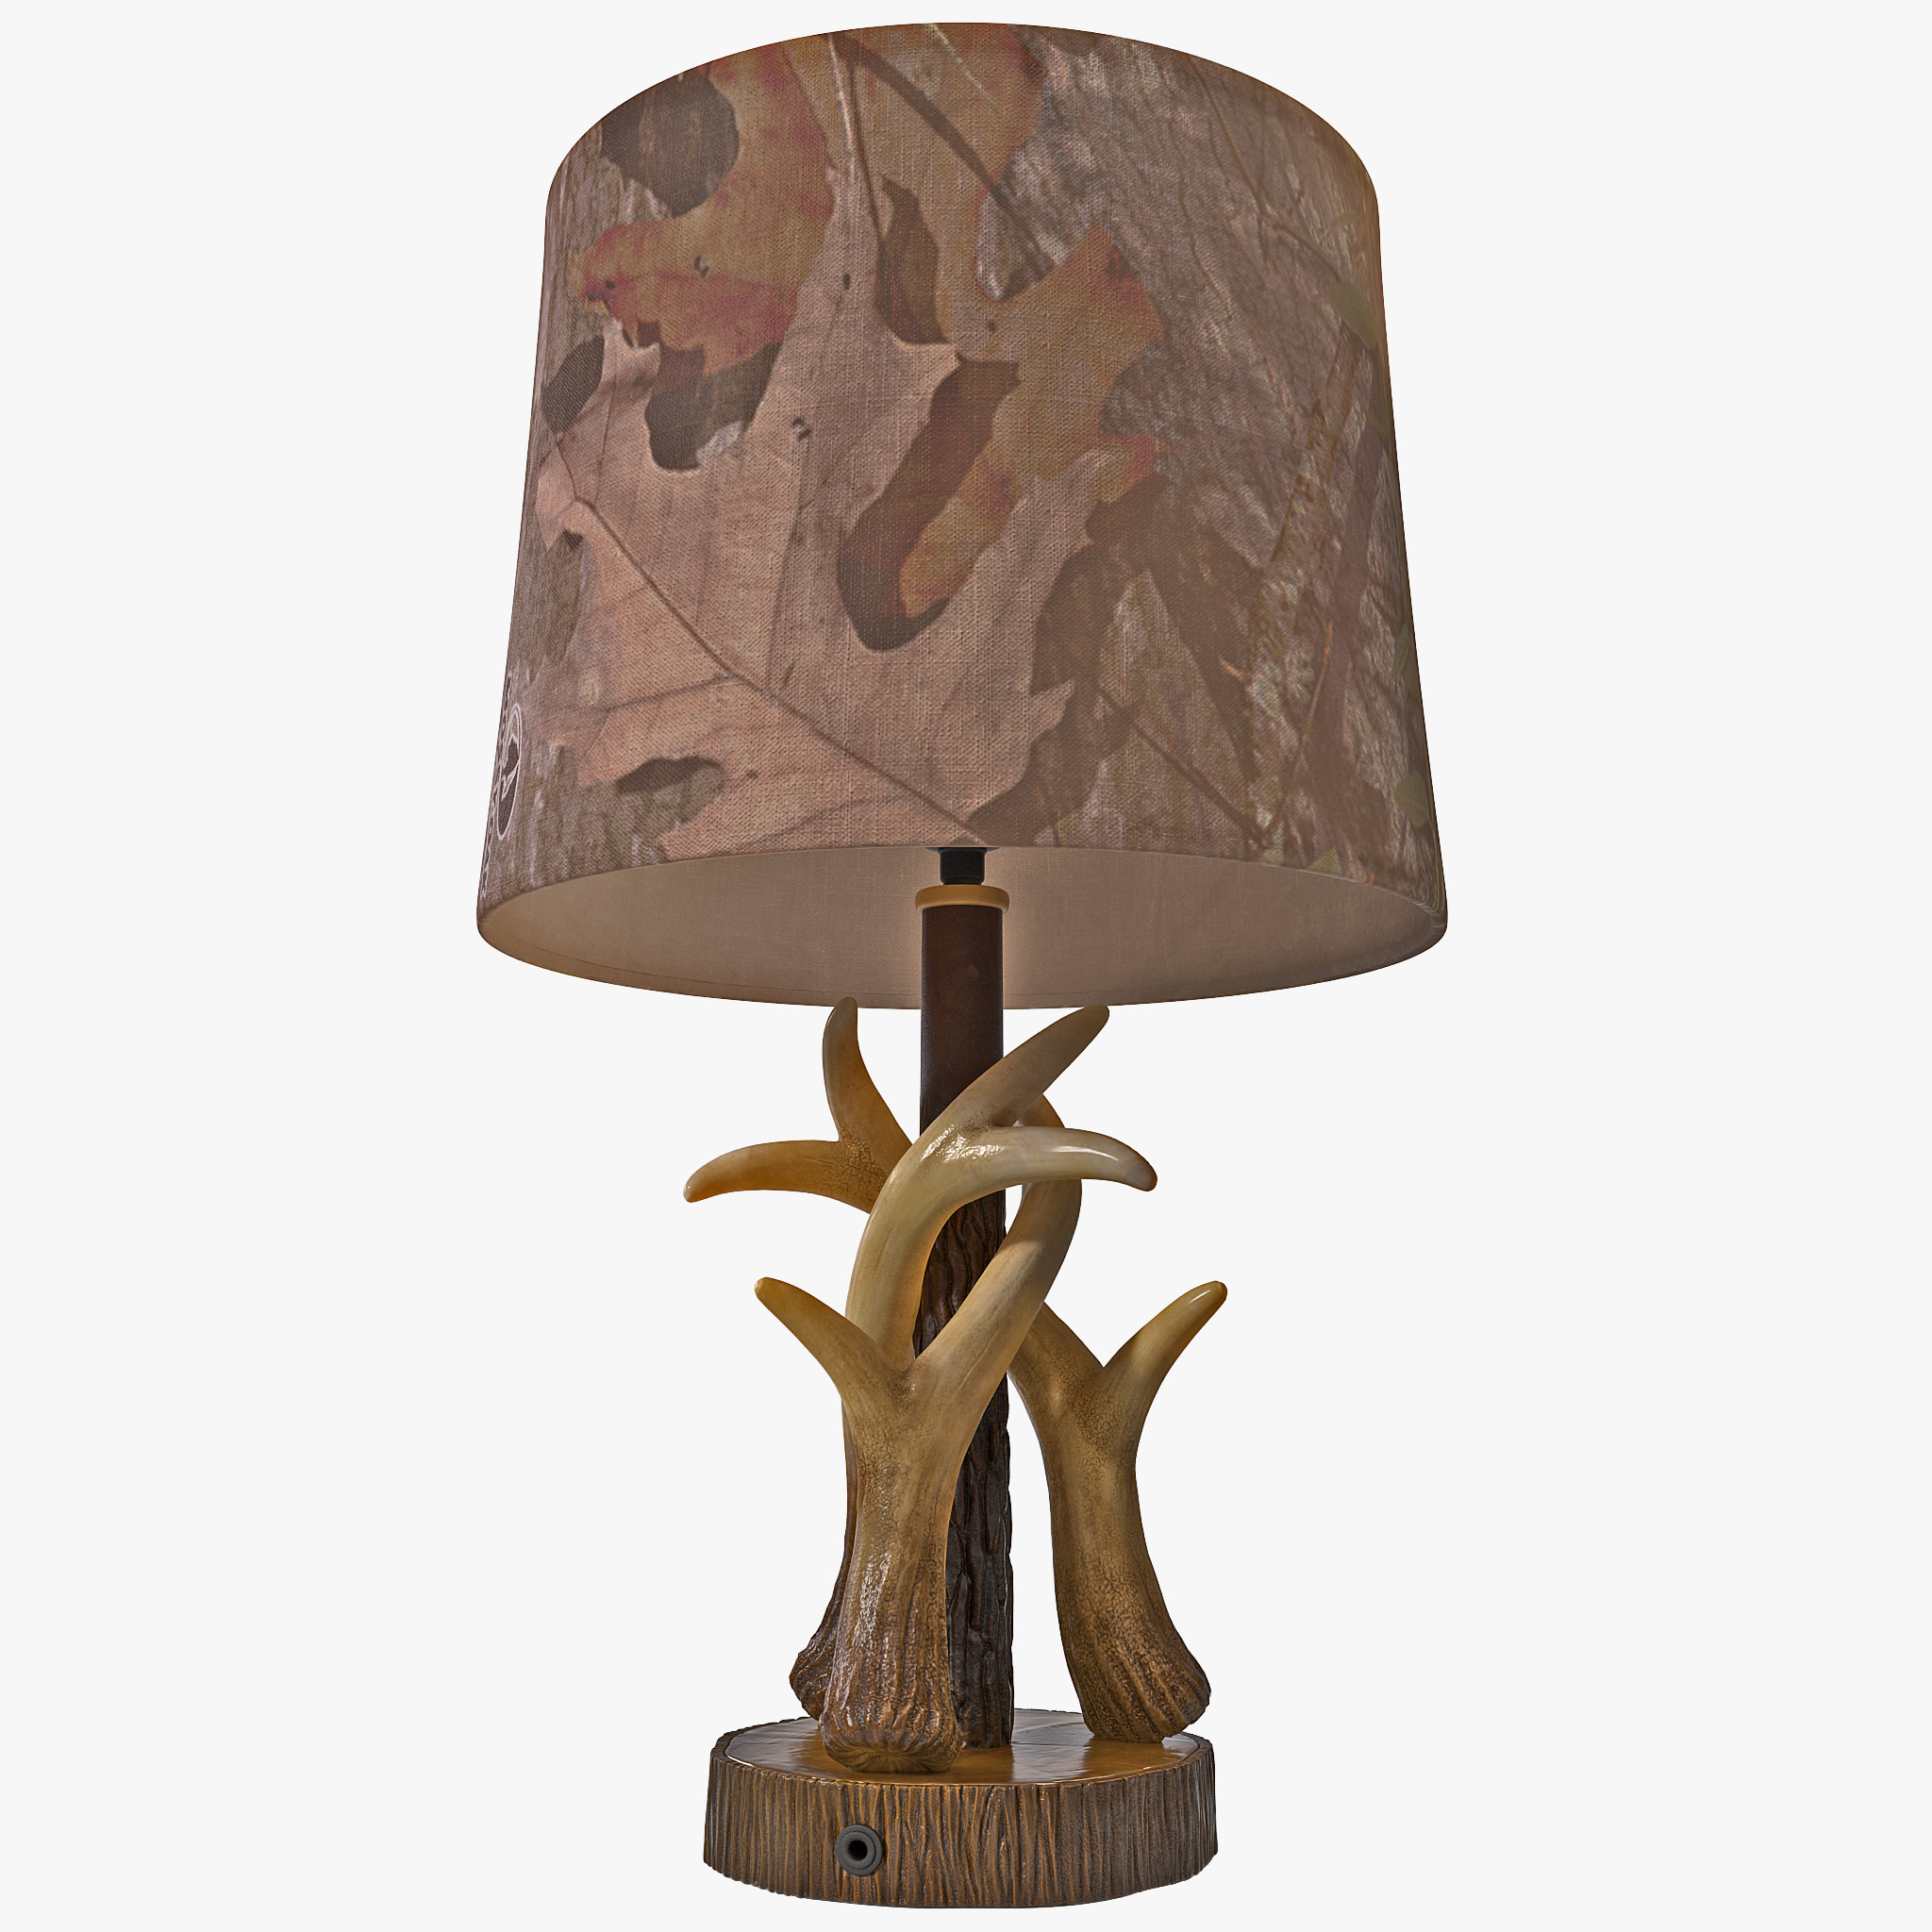 Accent Lamp Mossy Oak Deer_1.jpg